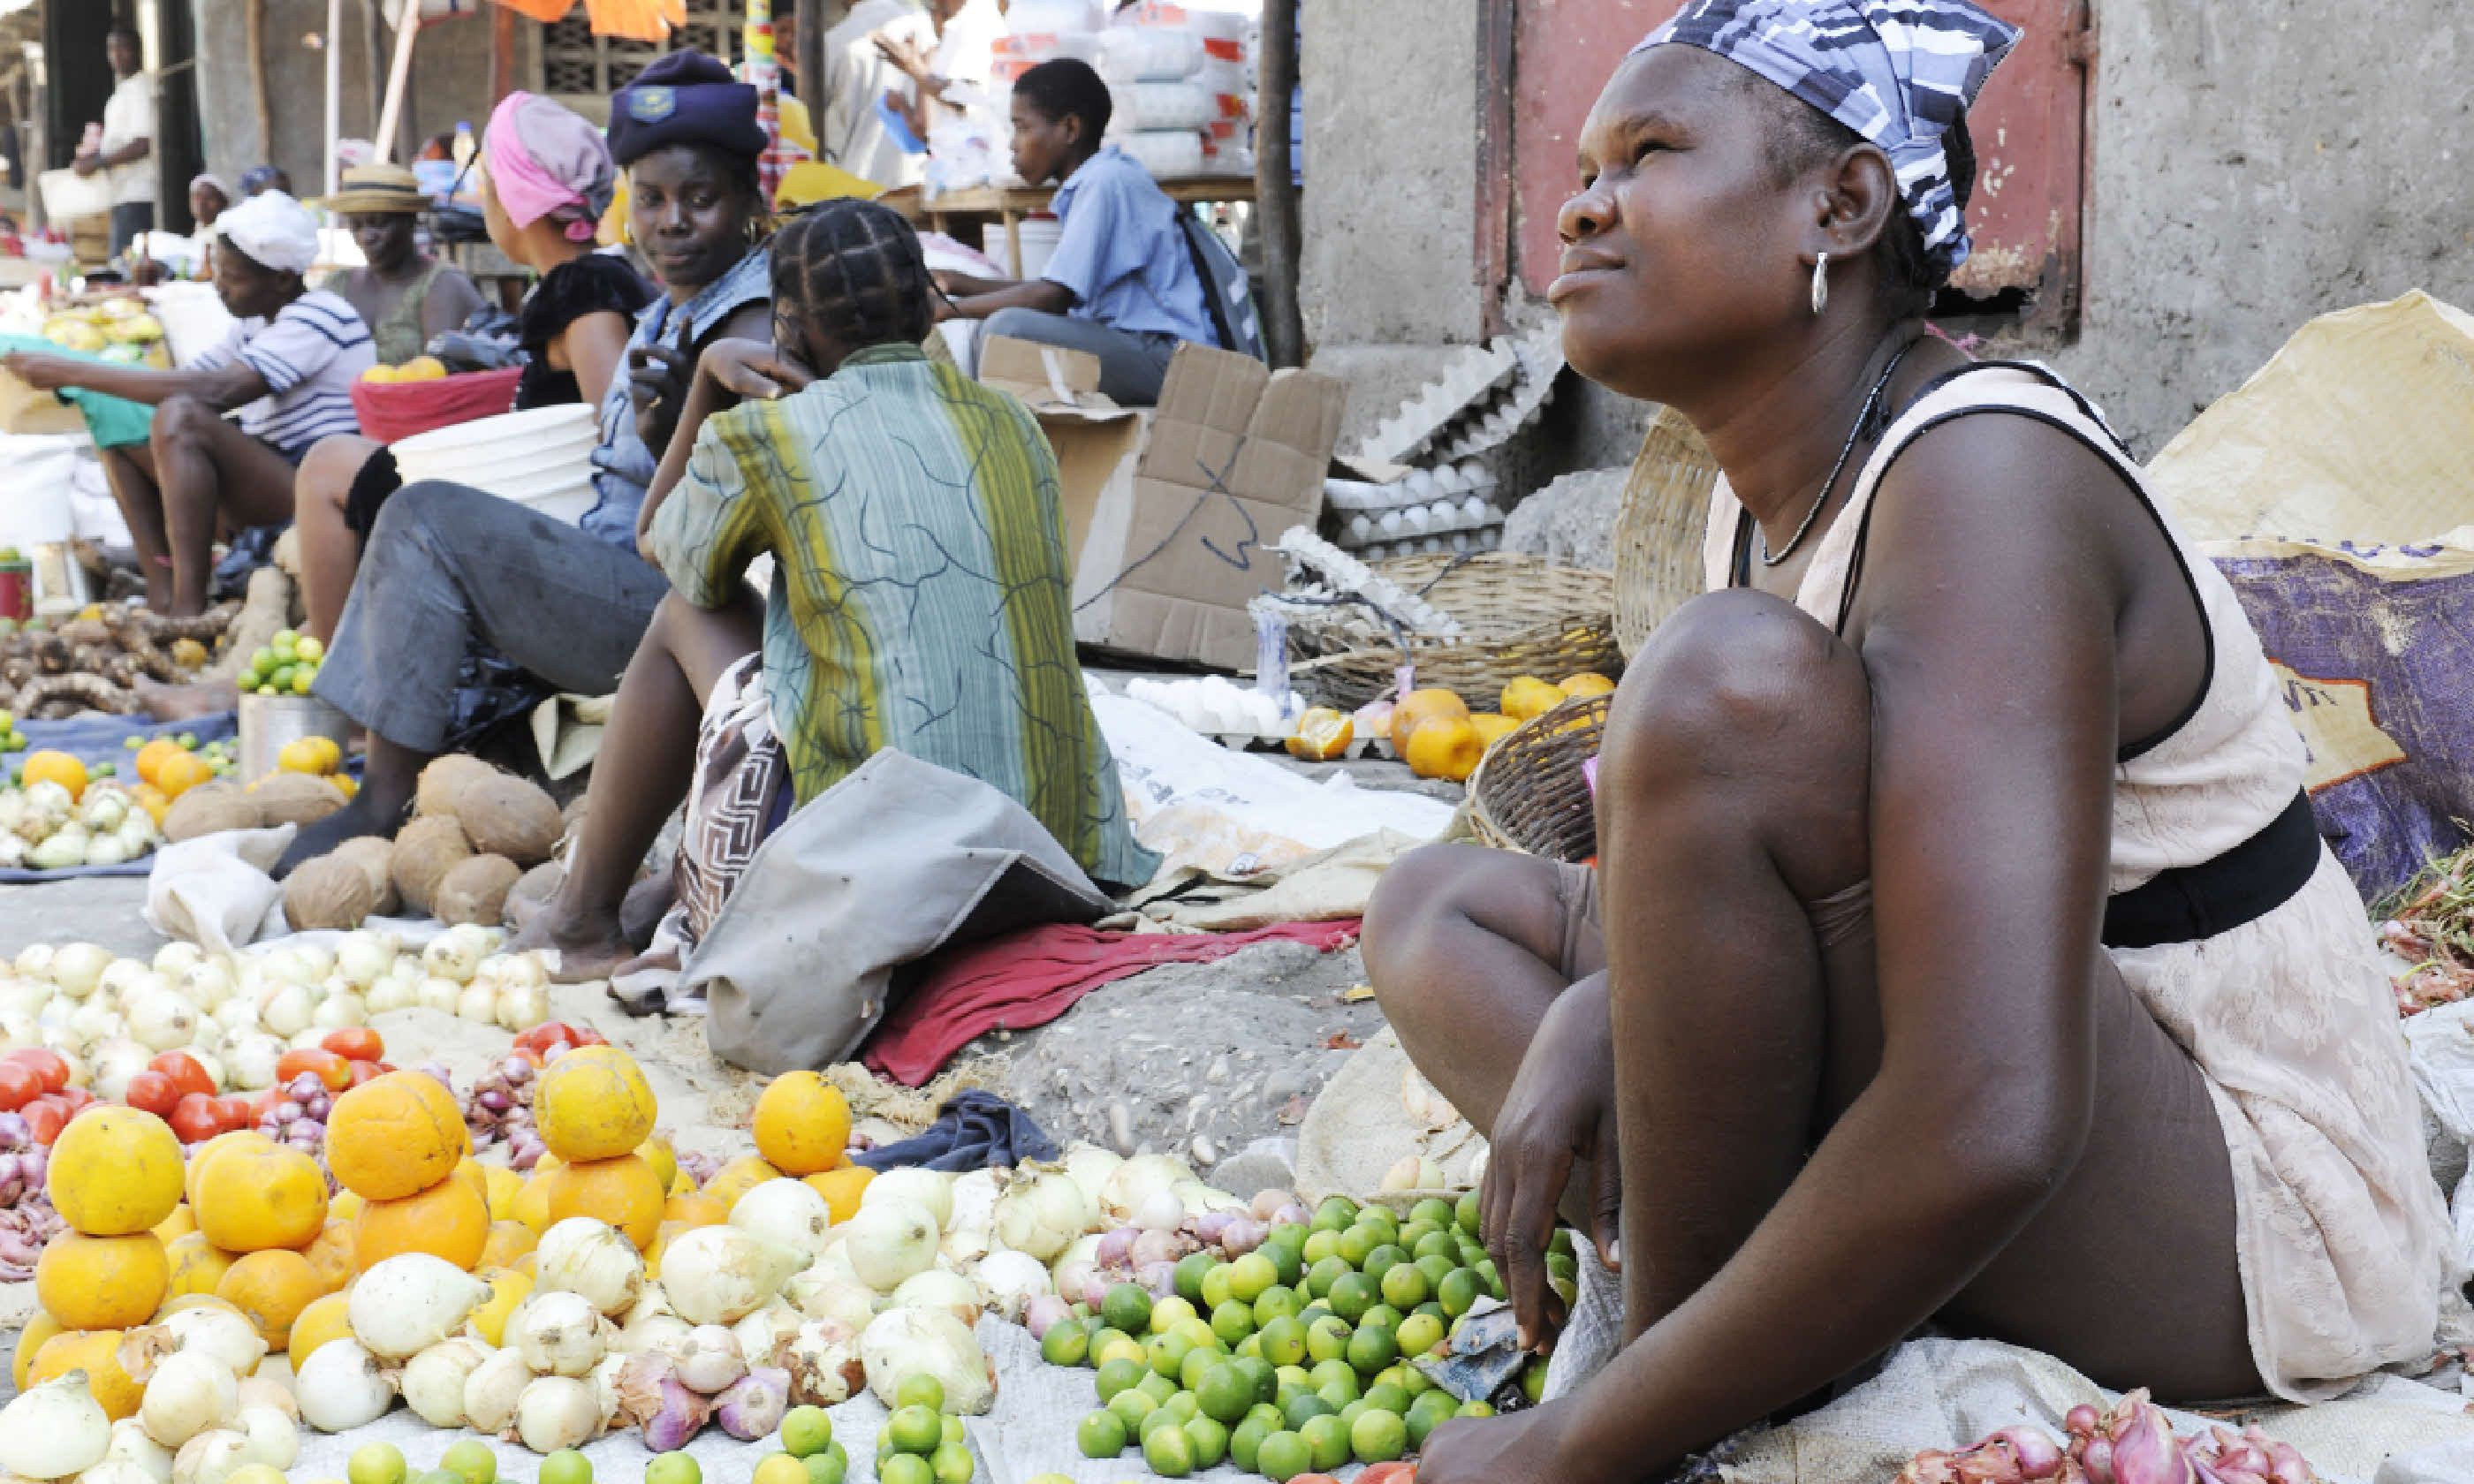 Woman selling in a market, Haiti (Shutterstock)